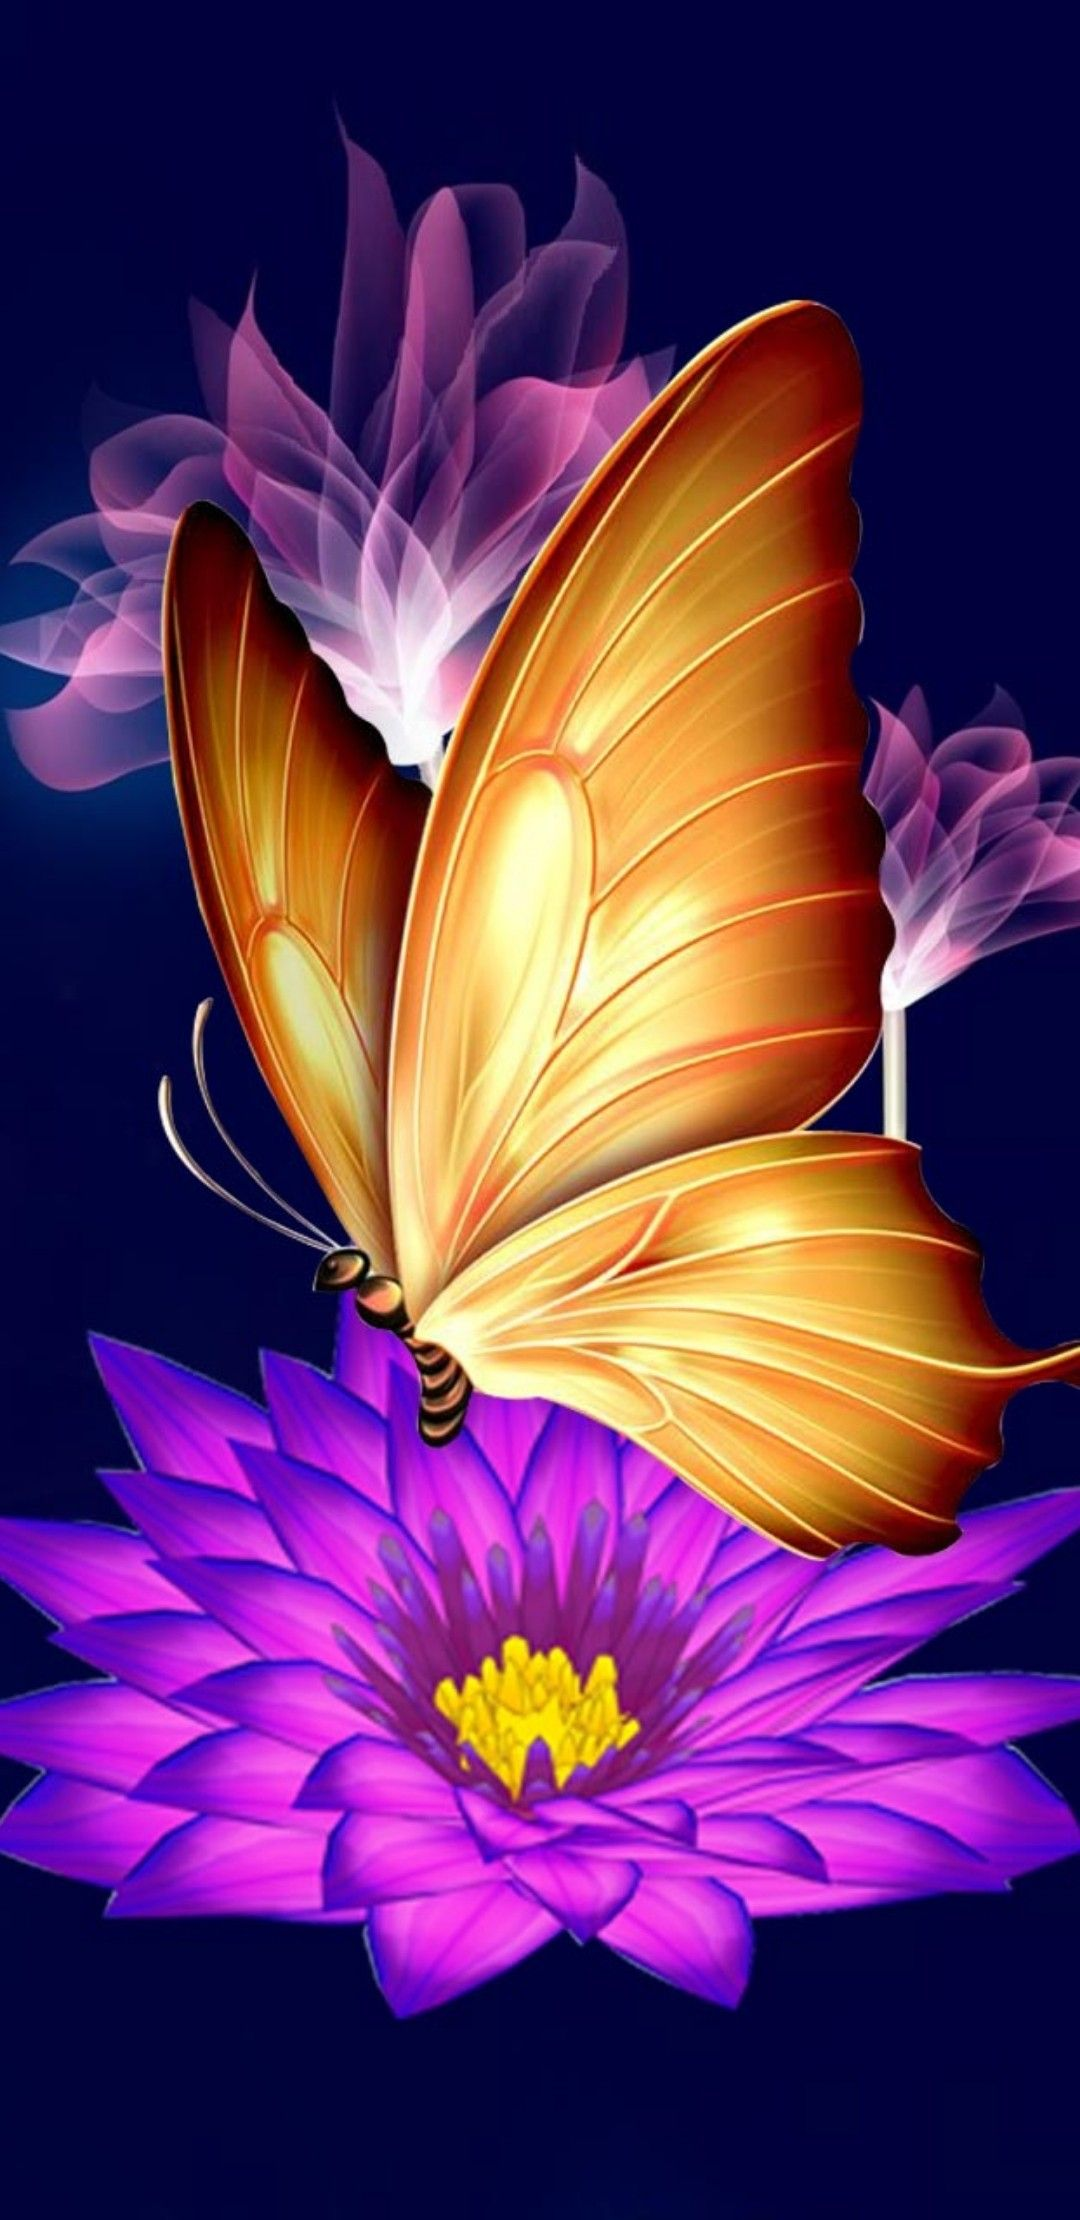 Pin by clydeen brown on glass vase in pinterest mariposas